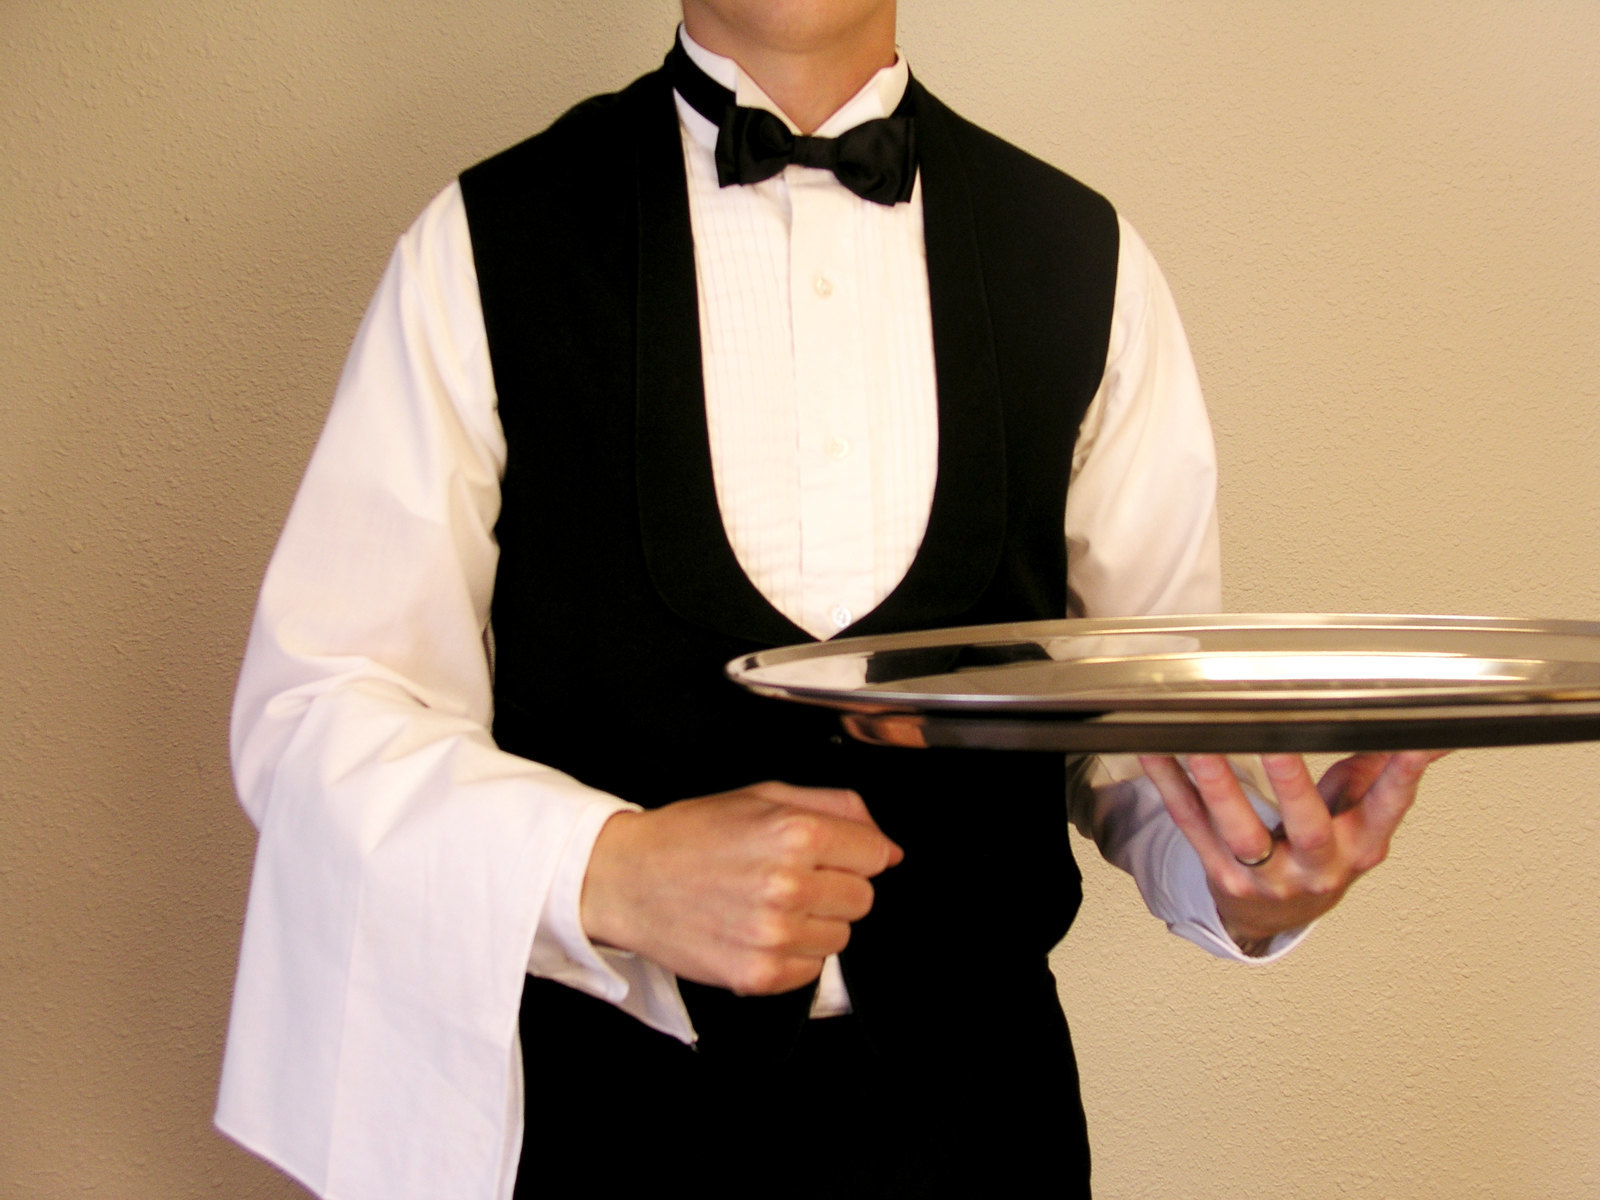 Top Ten Best Practices from the World of Professional Hospitality